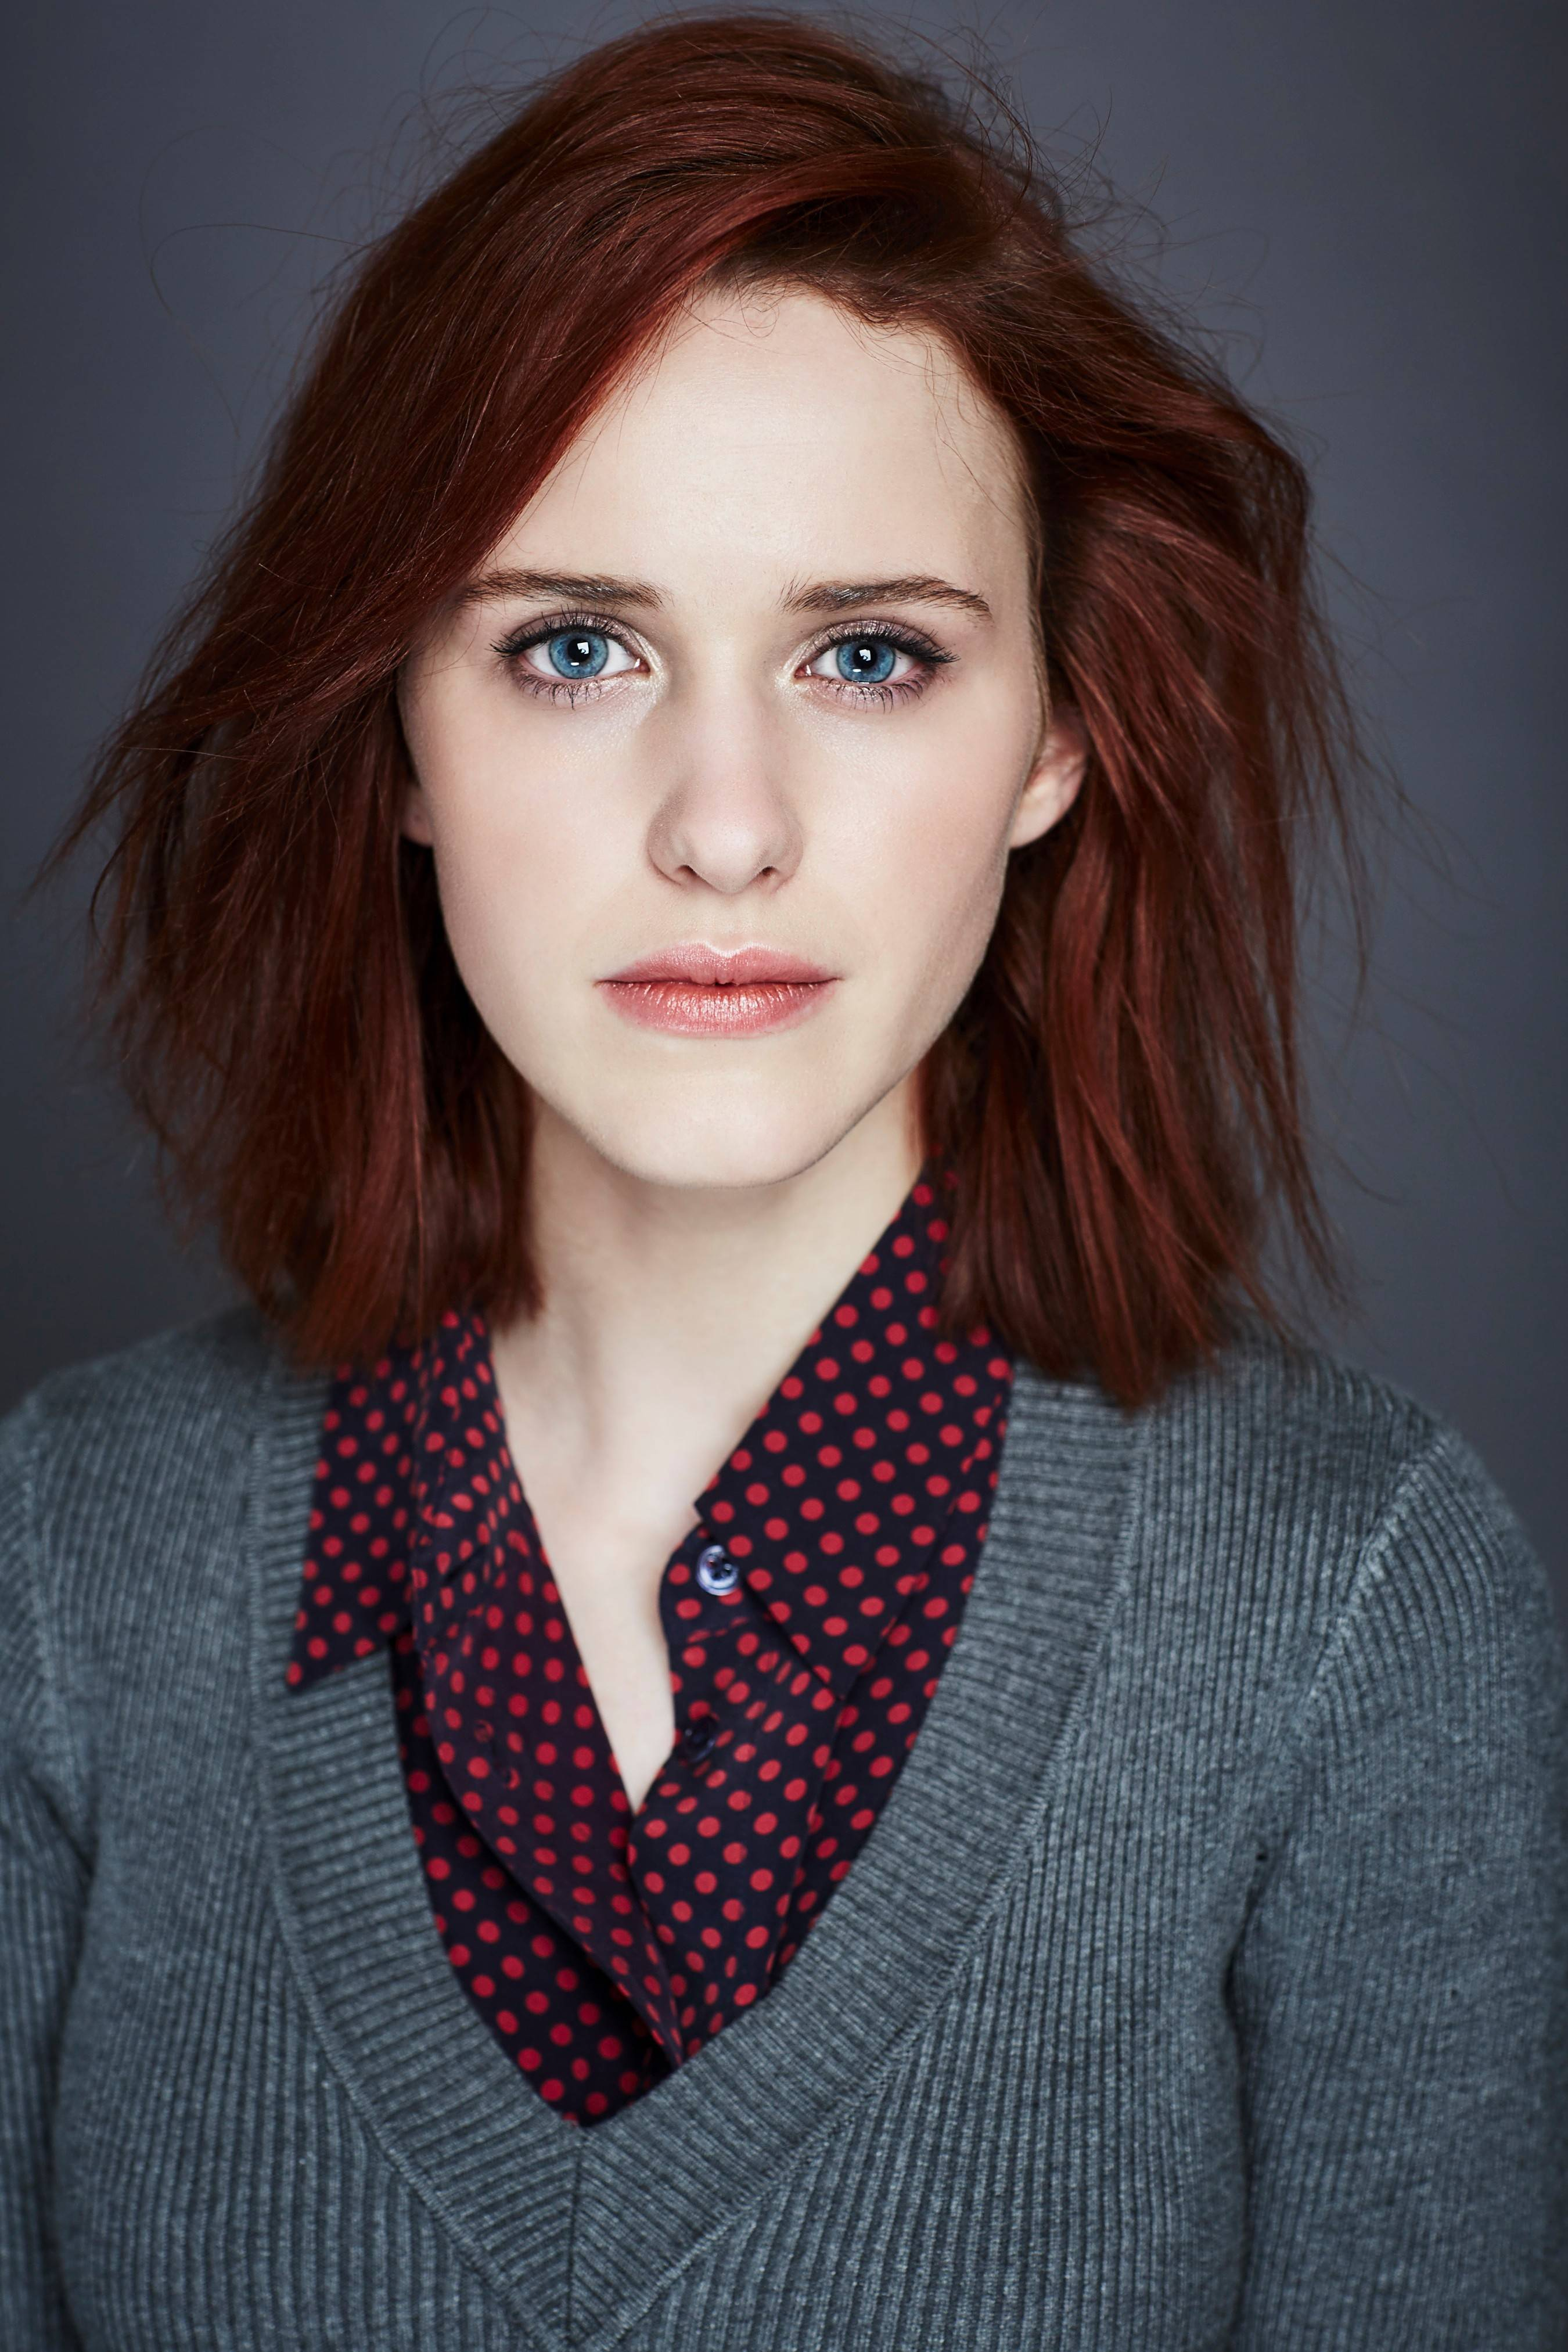 Rachel Elizabeth Brosnahan born December 15 1990 is an American actress best known for her awardwinning eponymous starring role in the Amazon comedydrama series